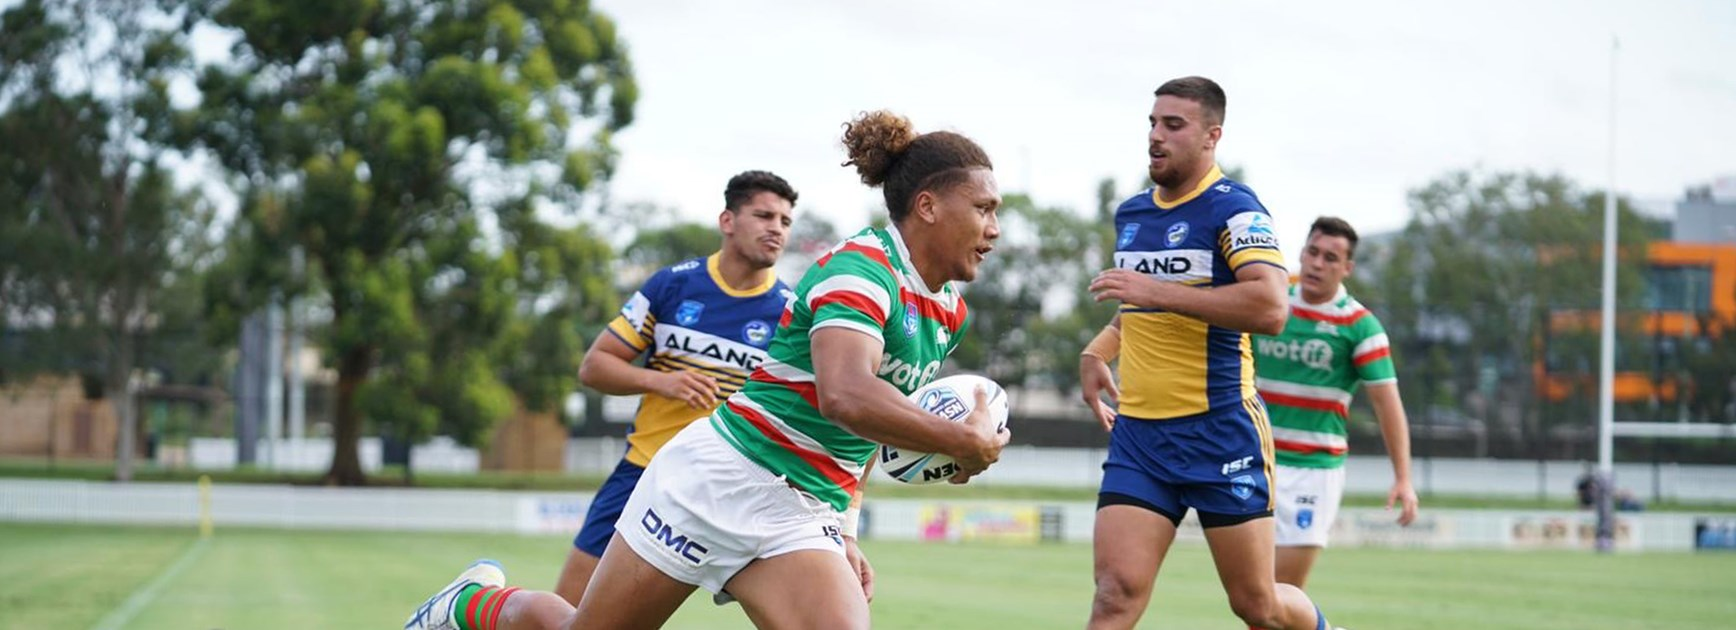 Rabbitohs Jersey Flegg Side Power home over Parramatta